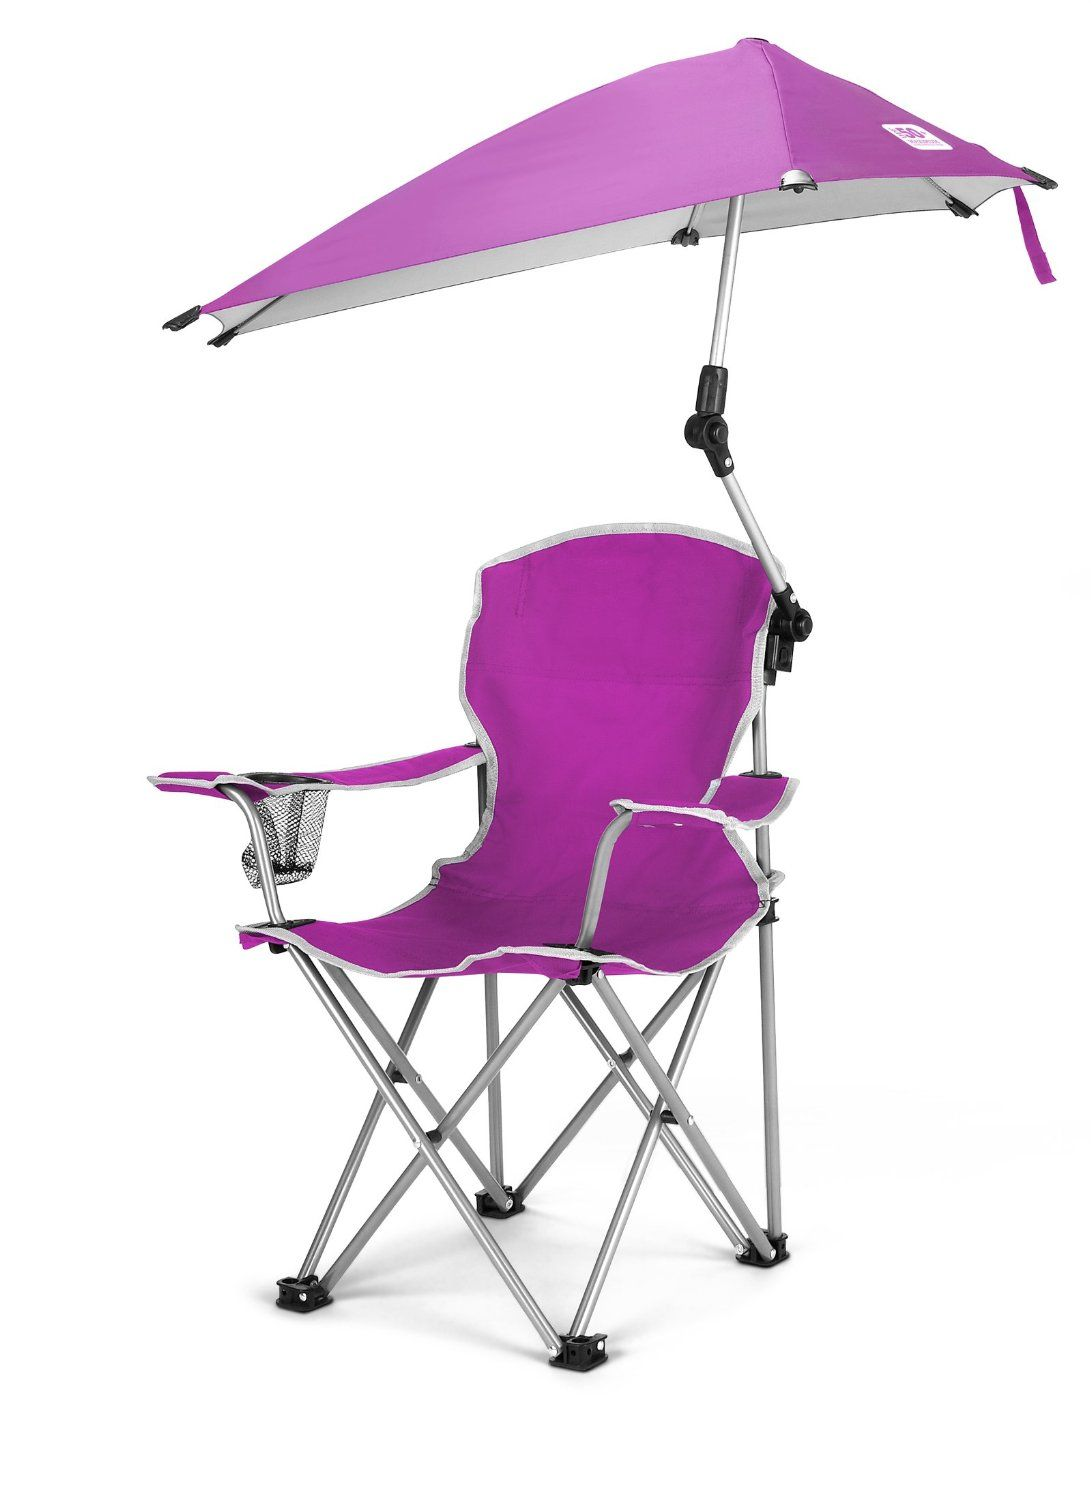 Toddler C&ing Chair With Umbrella - 360 Degree Sun and Wind Protection for Kids. Light  sc 1 st  Pinterest & Toddler Camping Chair With Umbrella - 360 Degree Sun and Wind ...